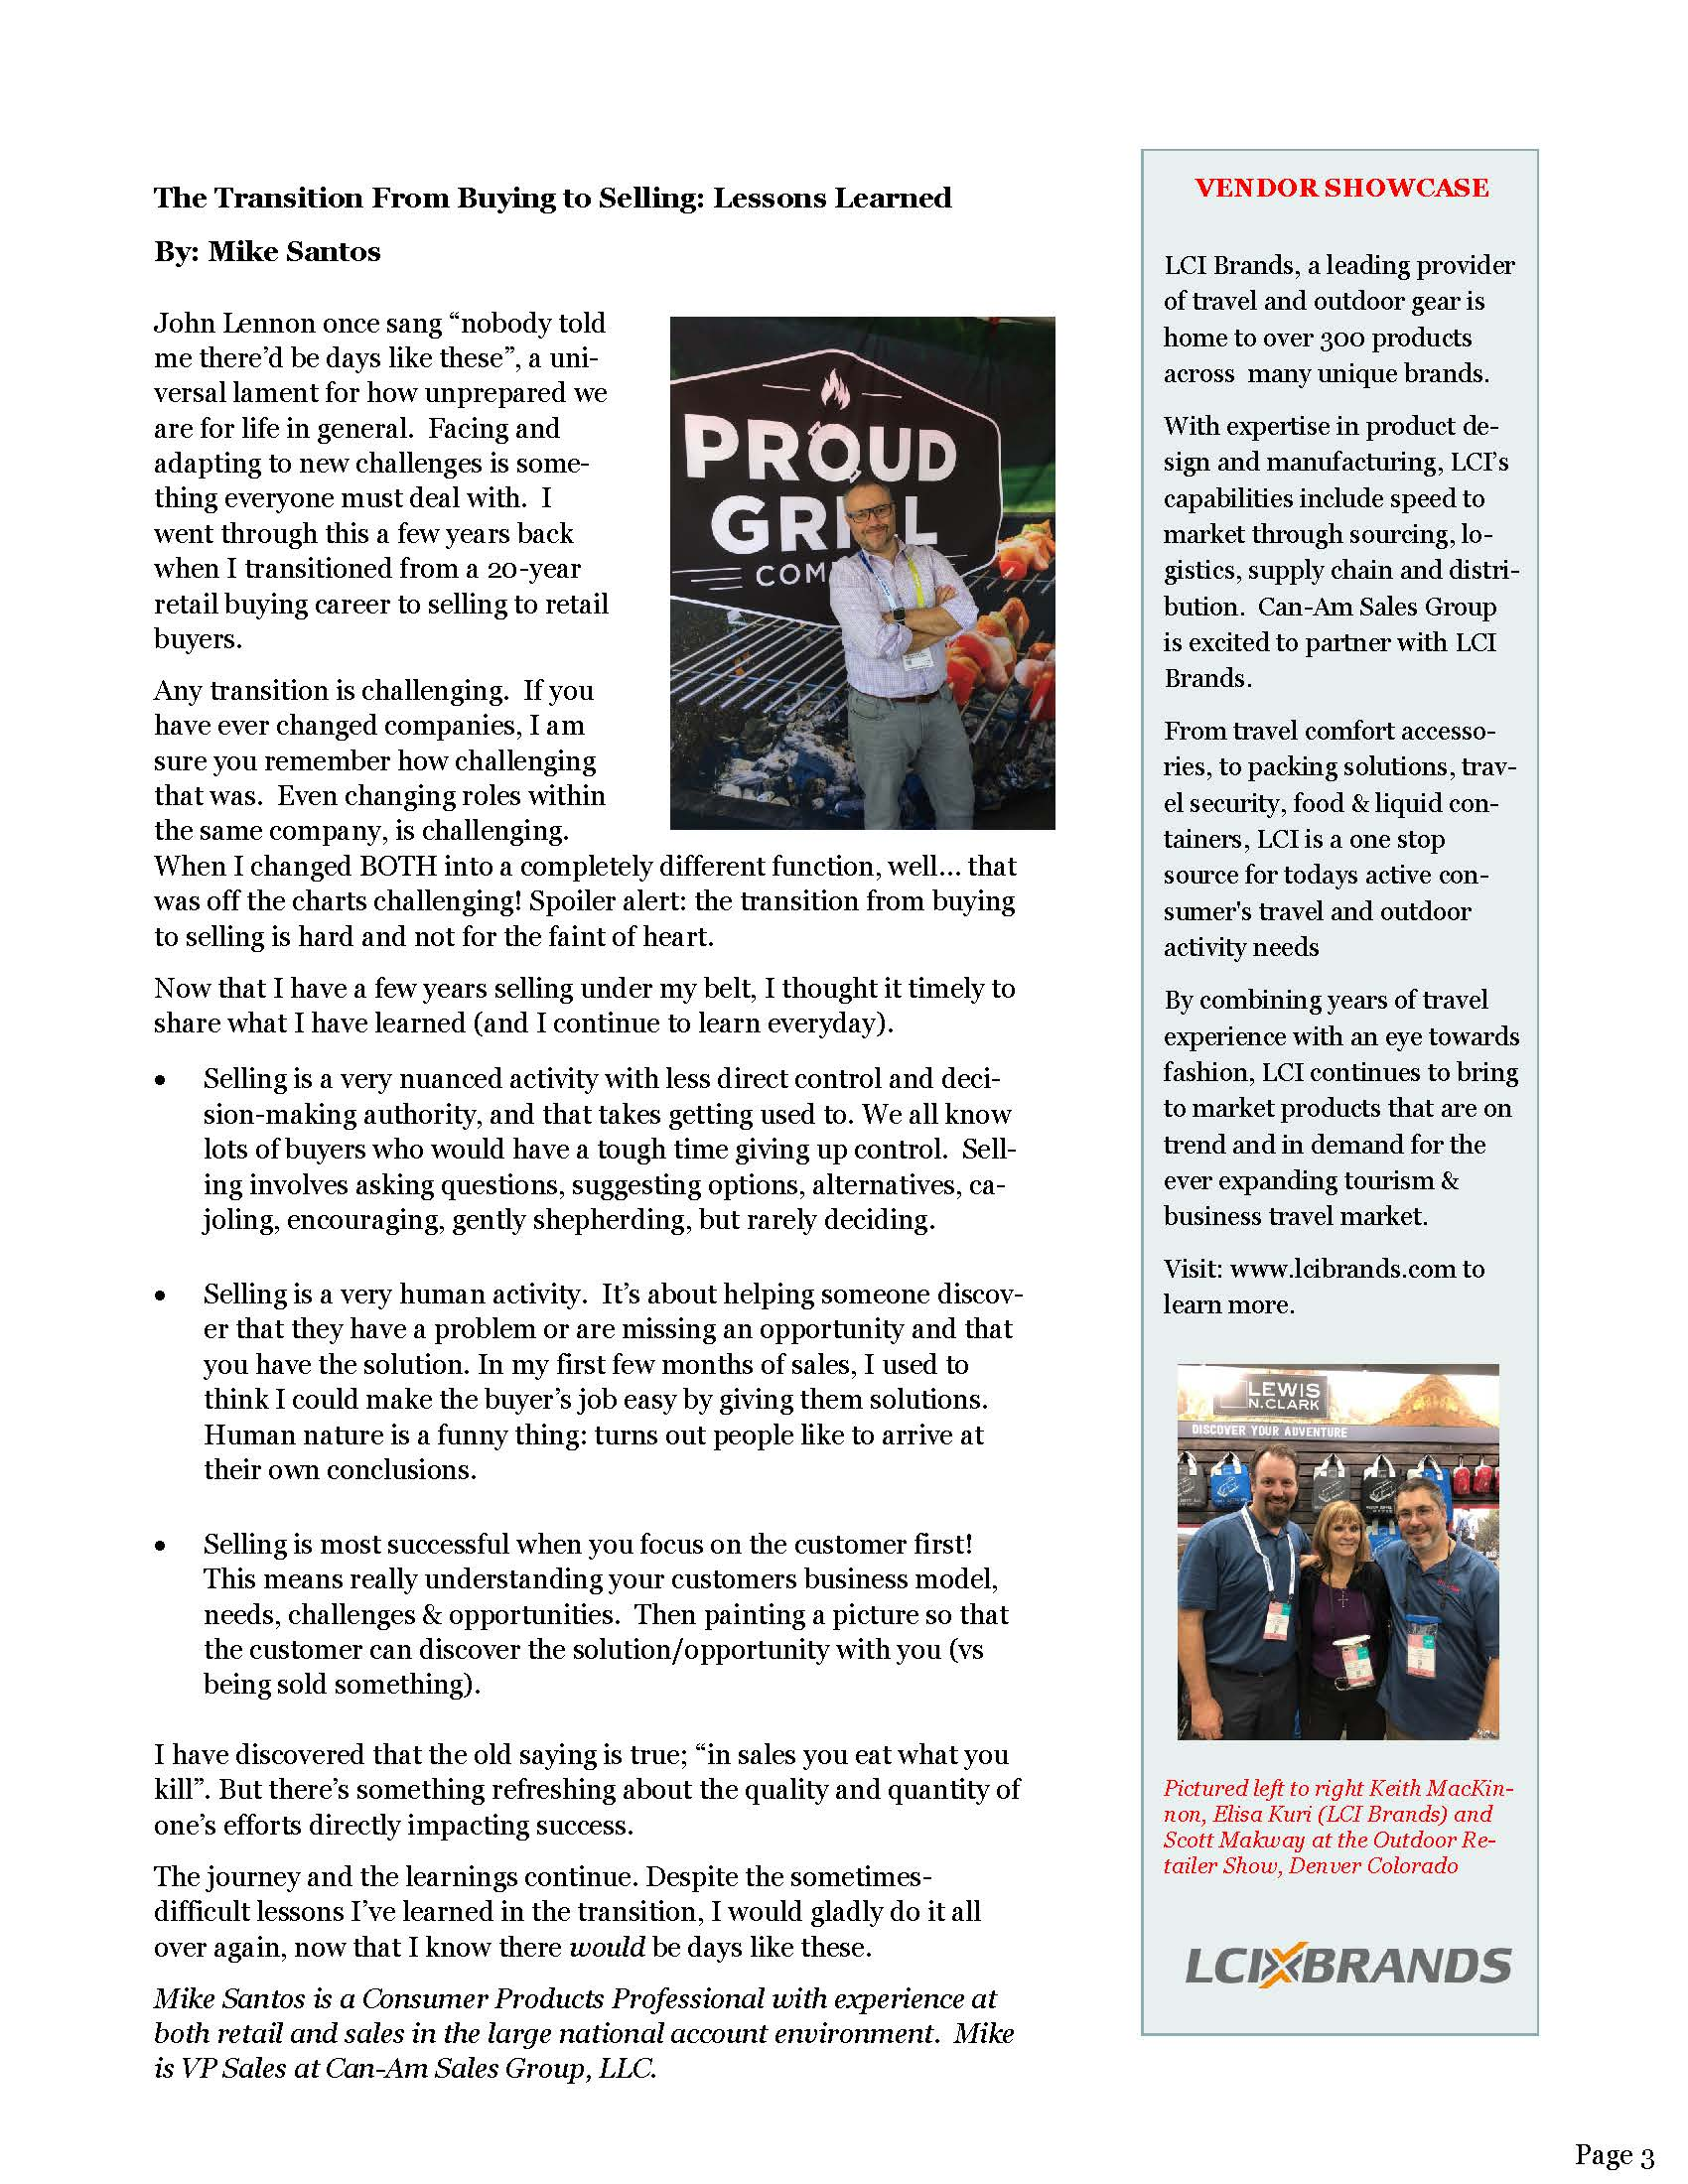 CanAm Newsletter V4, Page 3